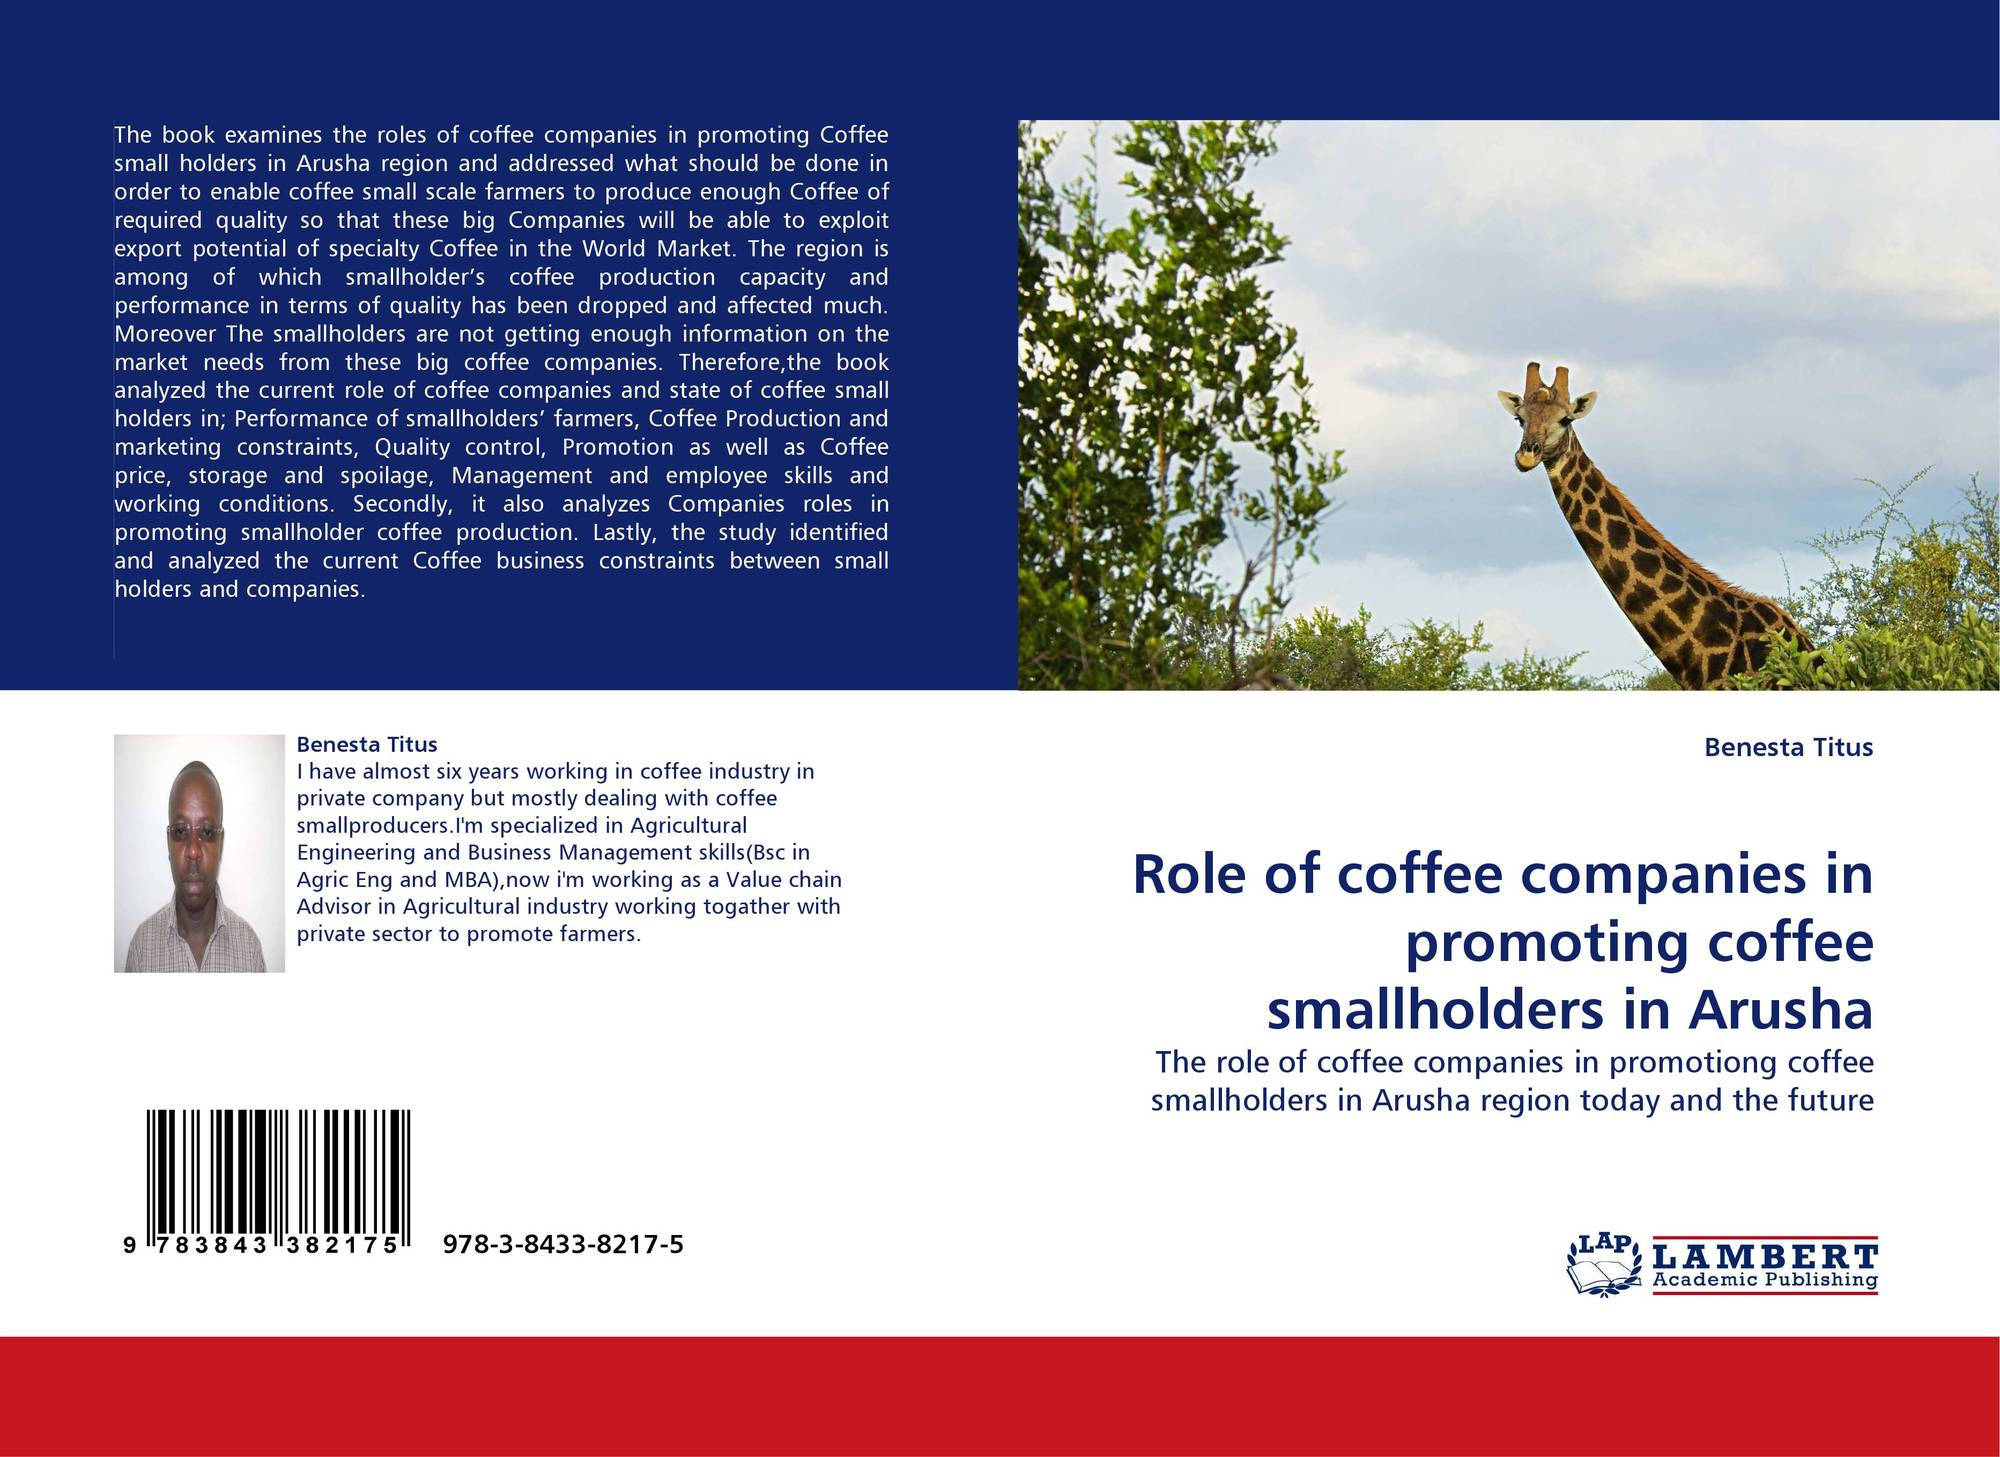 Role of coffee companies in promoting coffee smallholders in